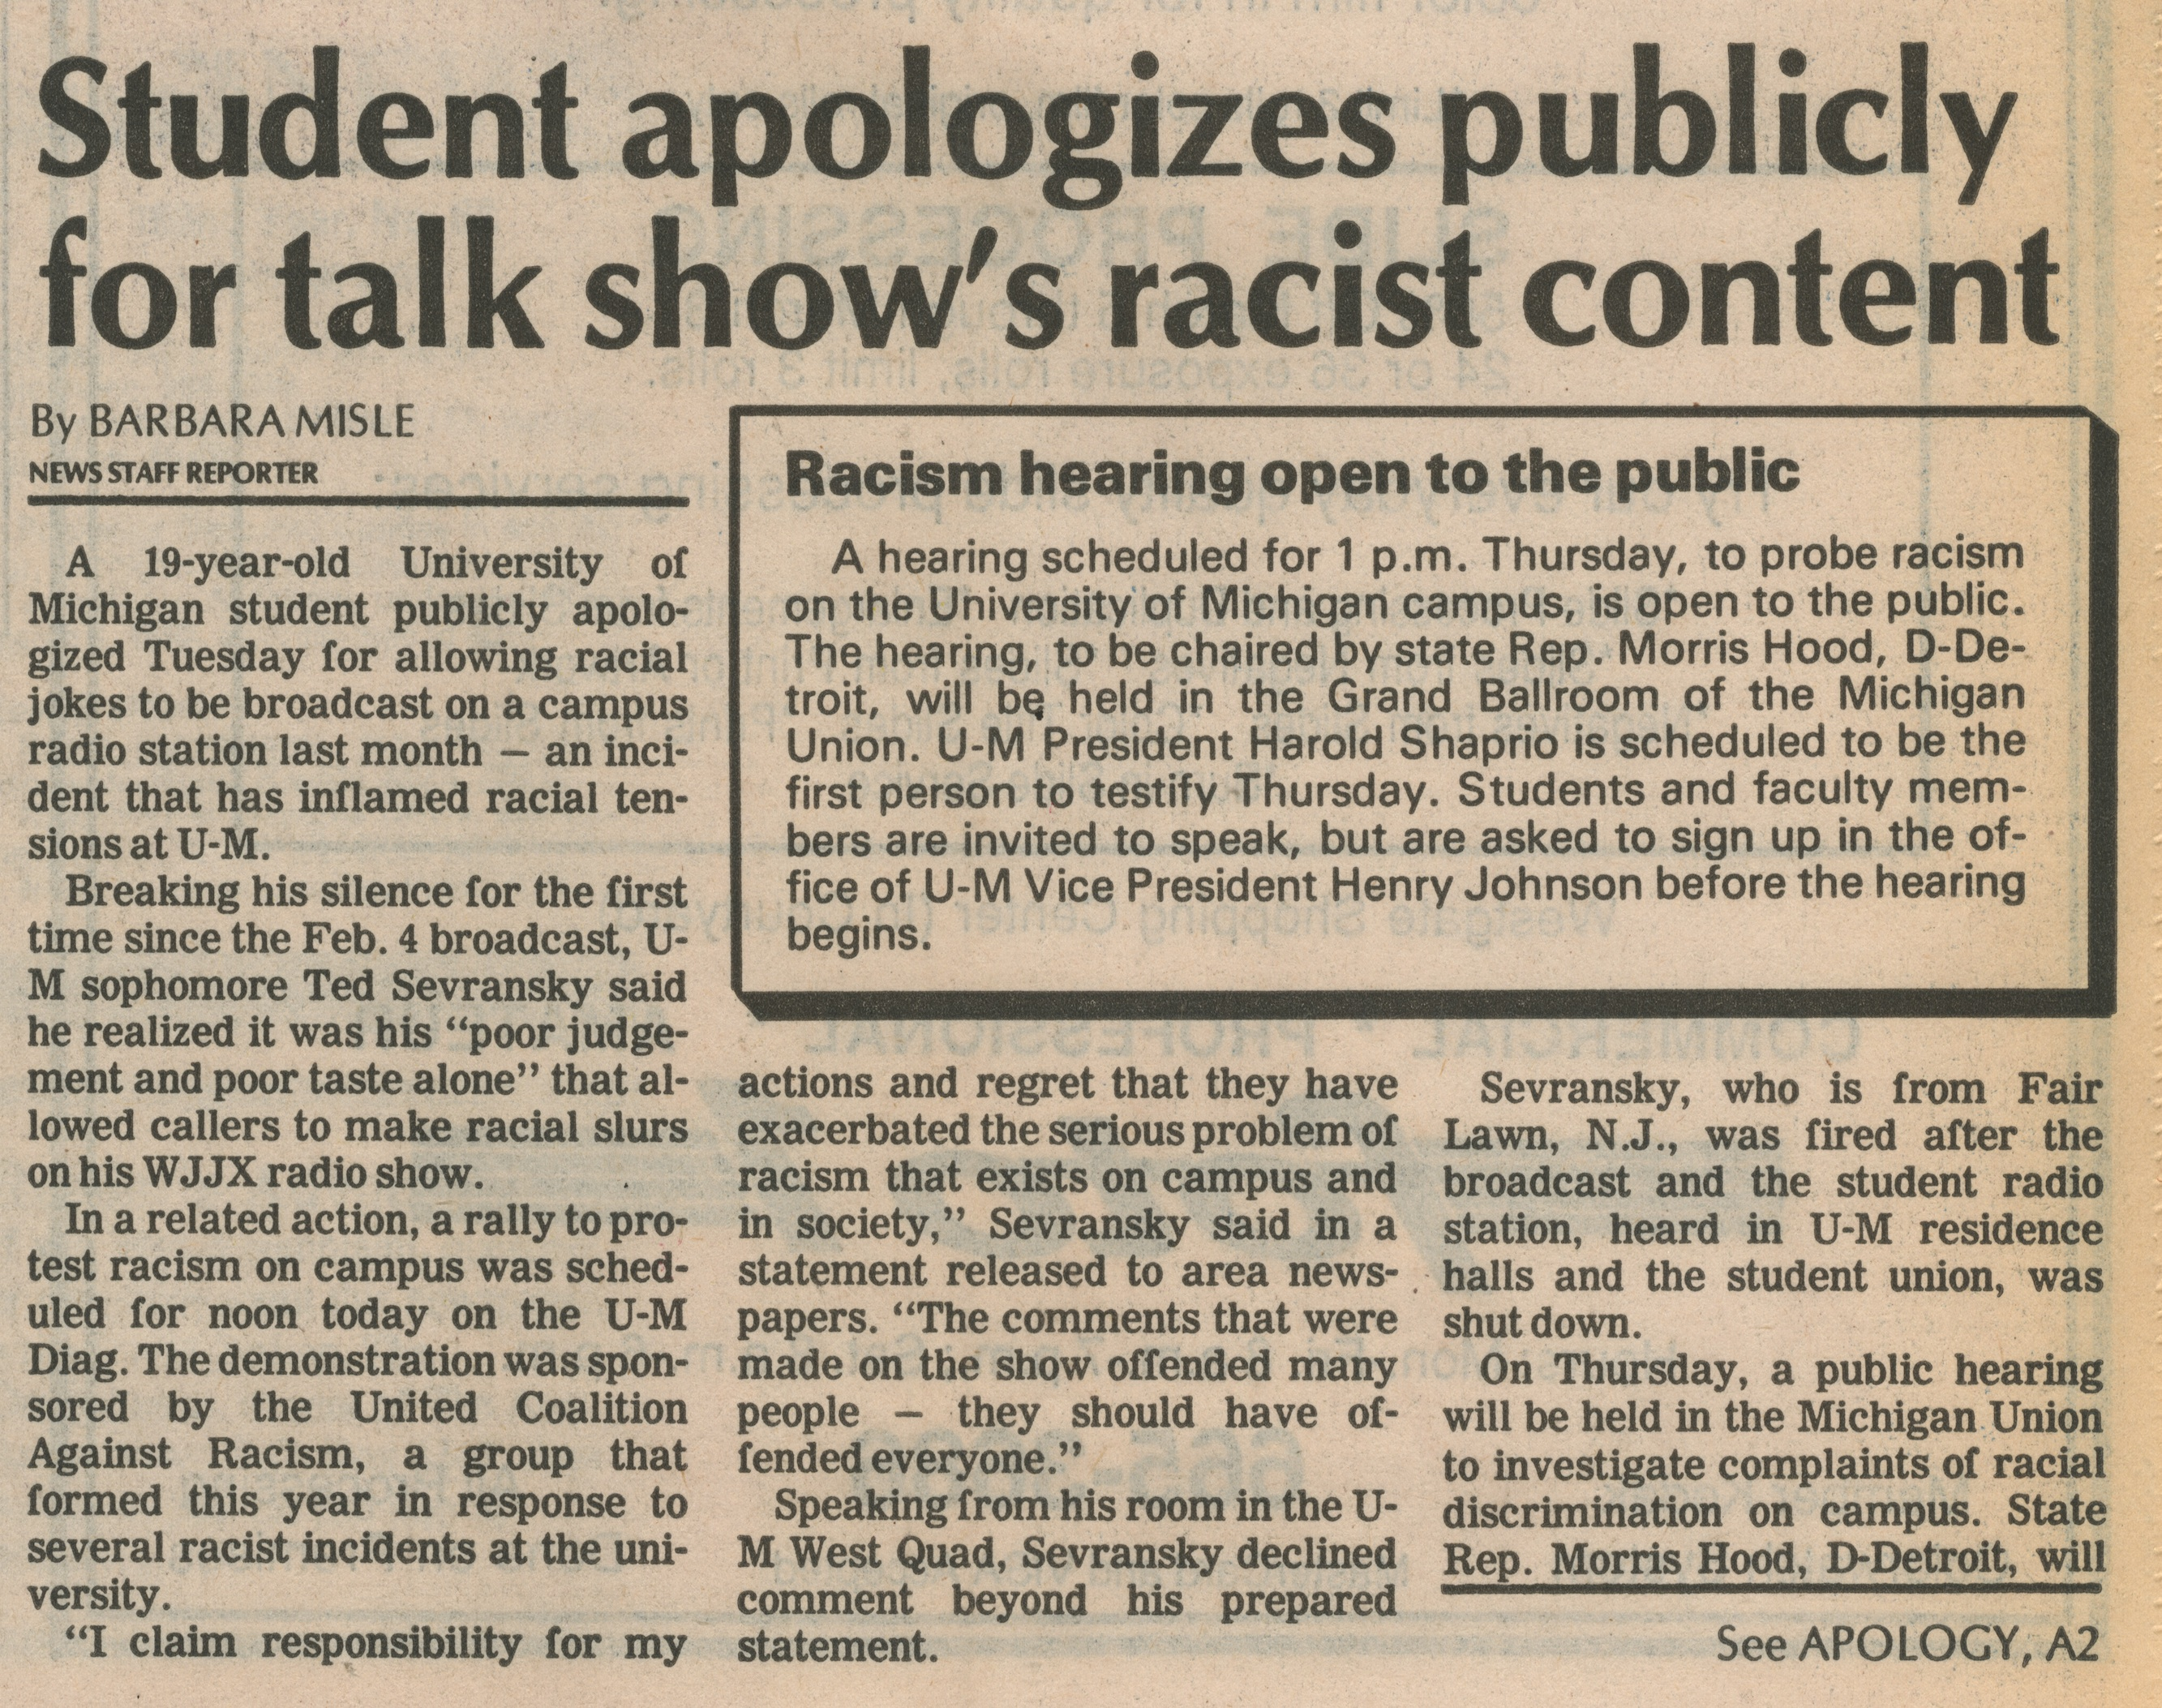 Student Apologizes Publicly For Talk Show's Racist Content image